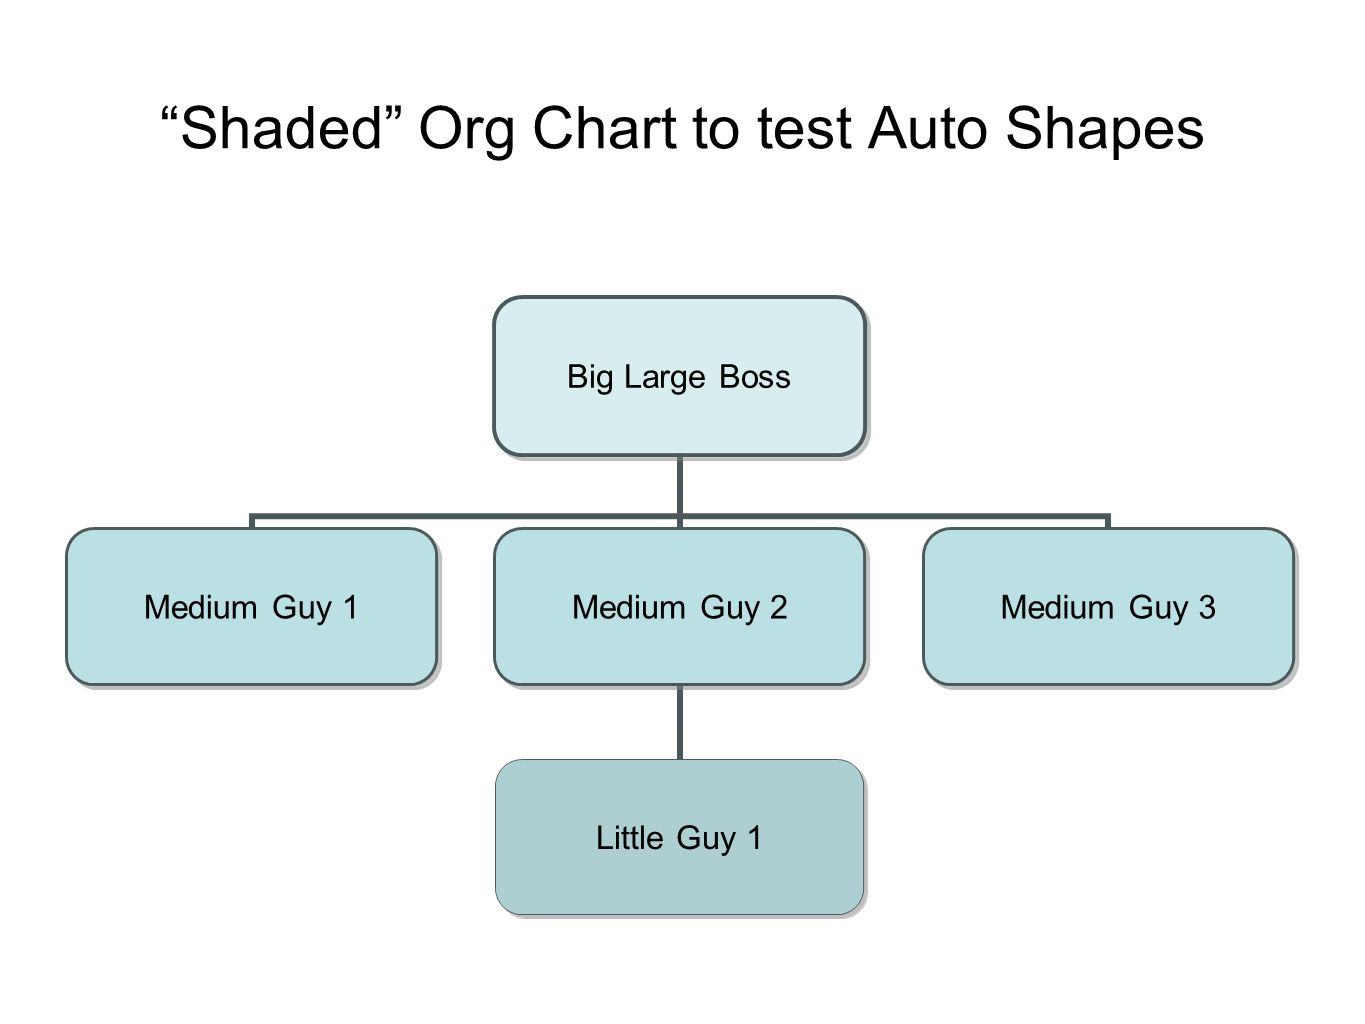 Shaded Org Chart to test Auto Shapes Big Large Boss Medium Guy 1 Medium Guy 2 Little Guy 1 Medium Guy 3